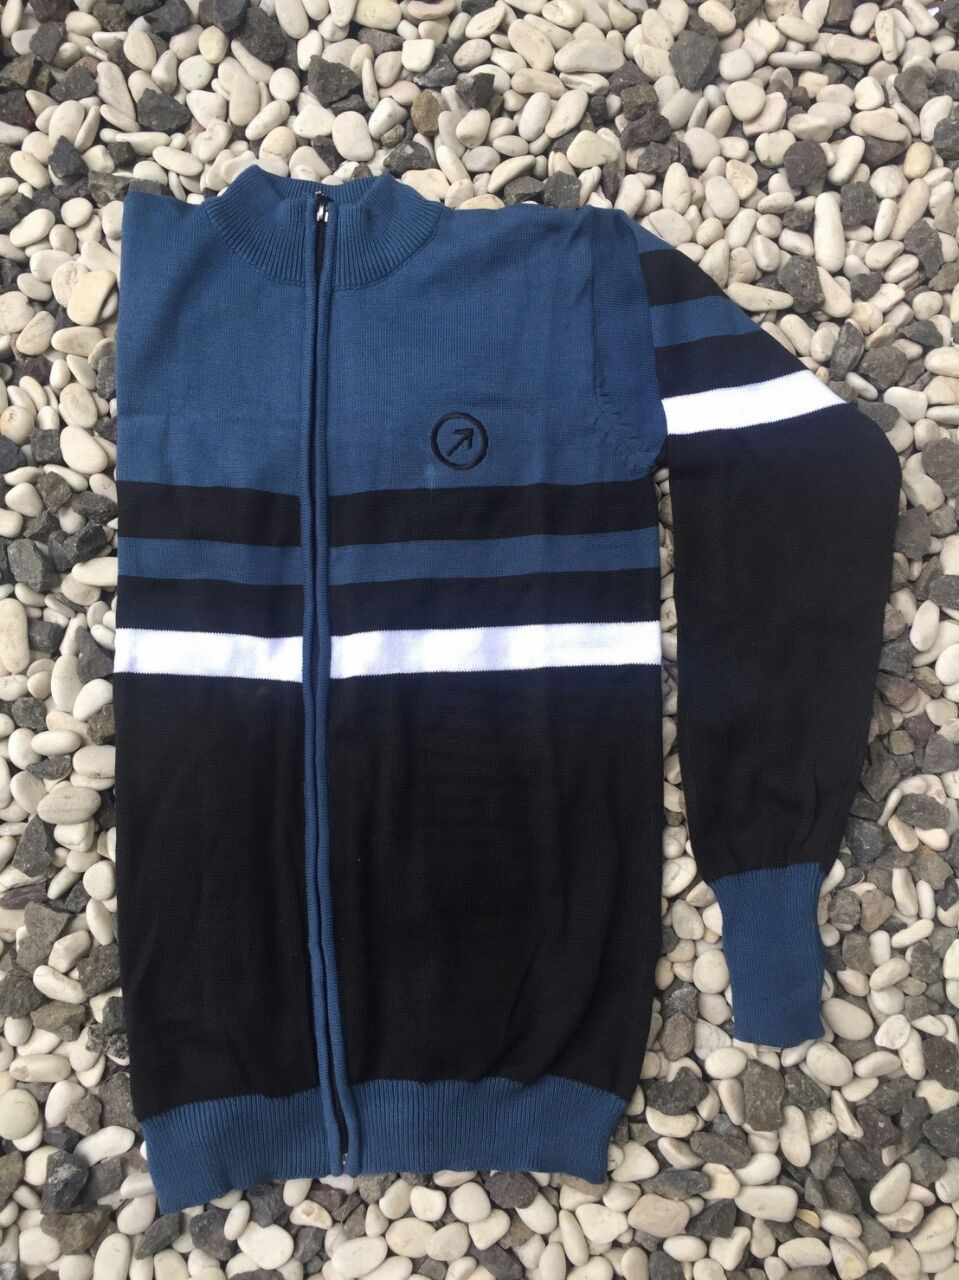 Jaket Sweater Blue Black